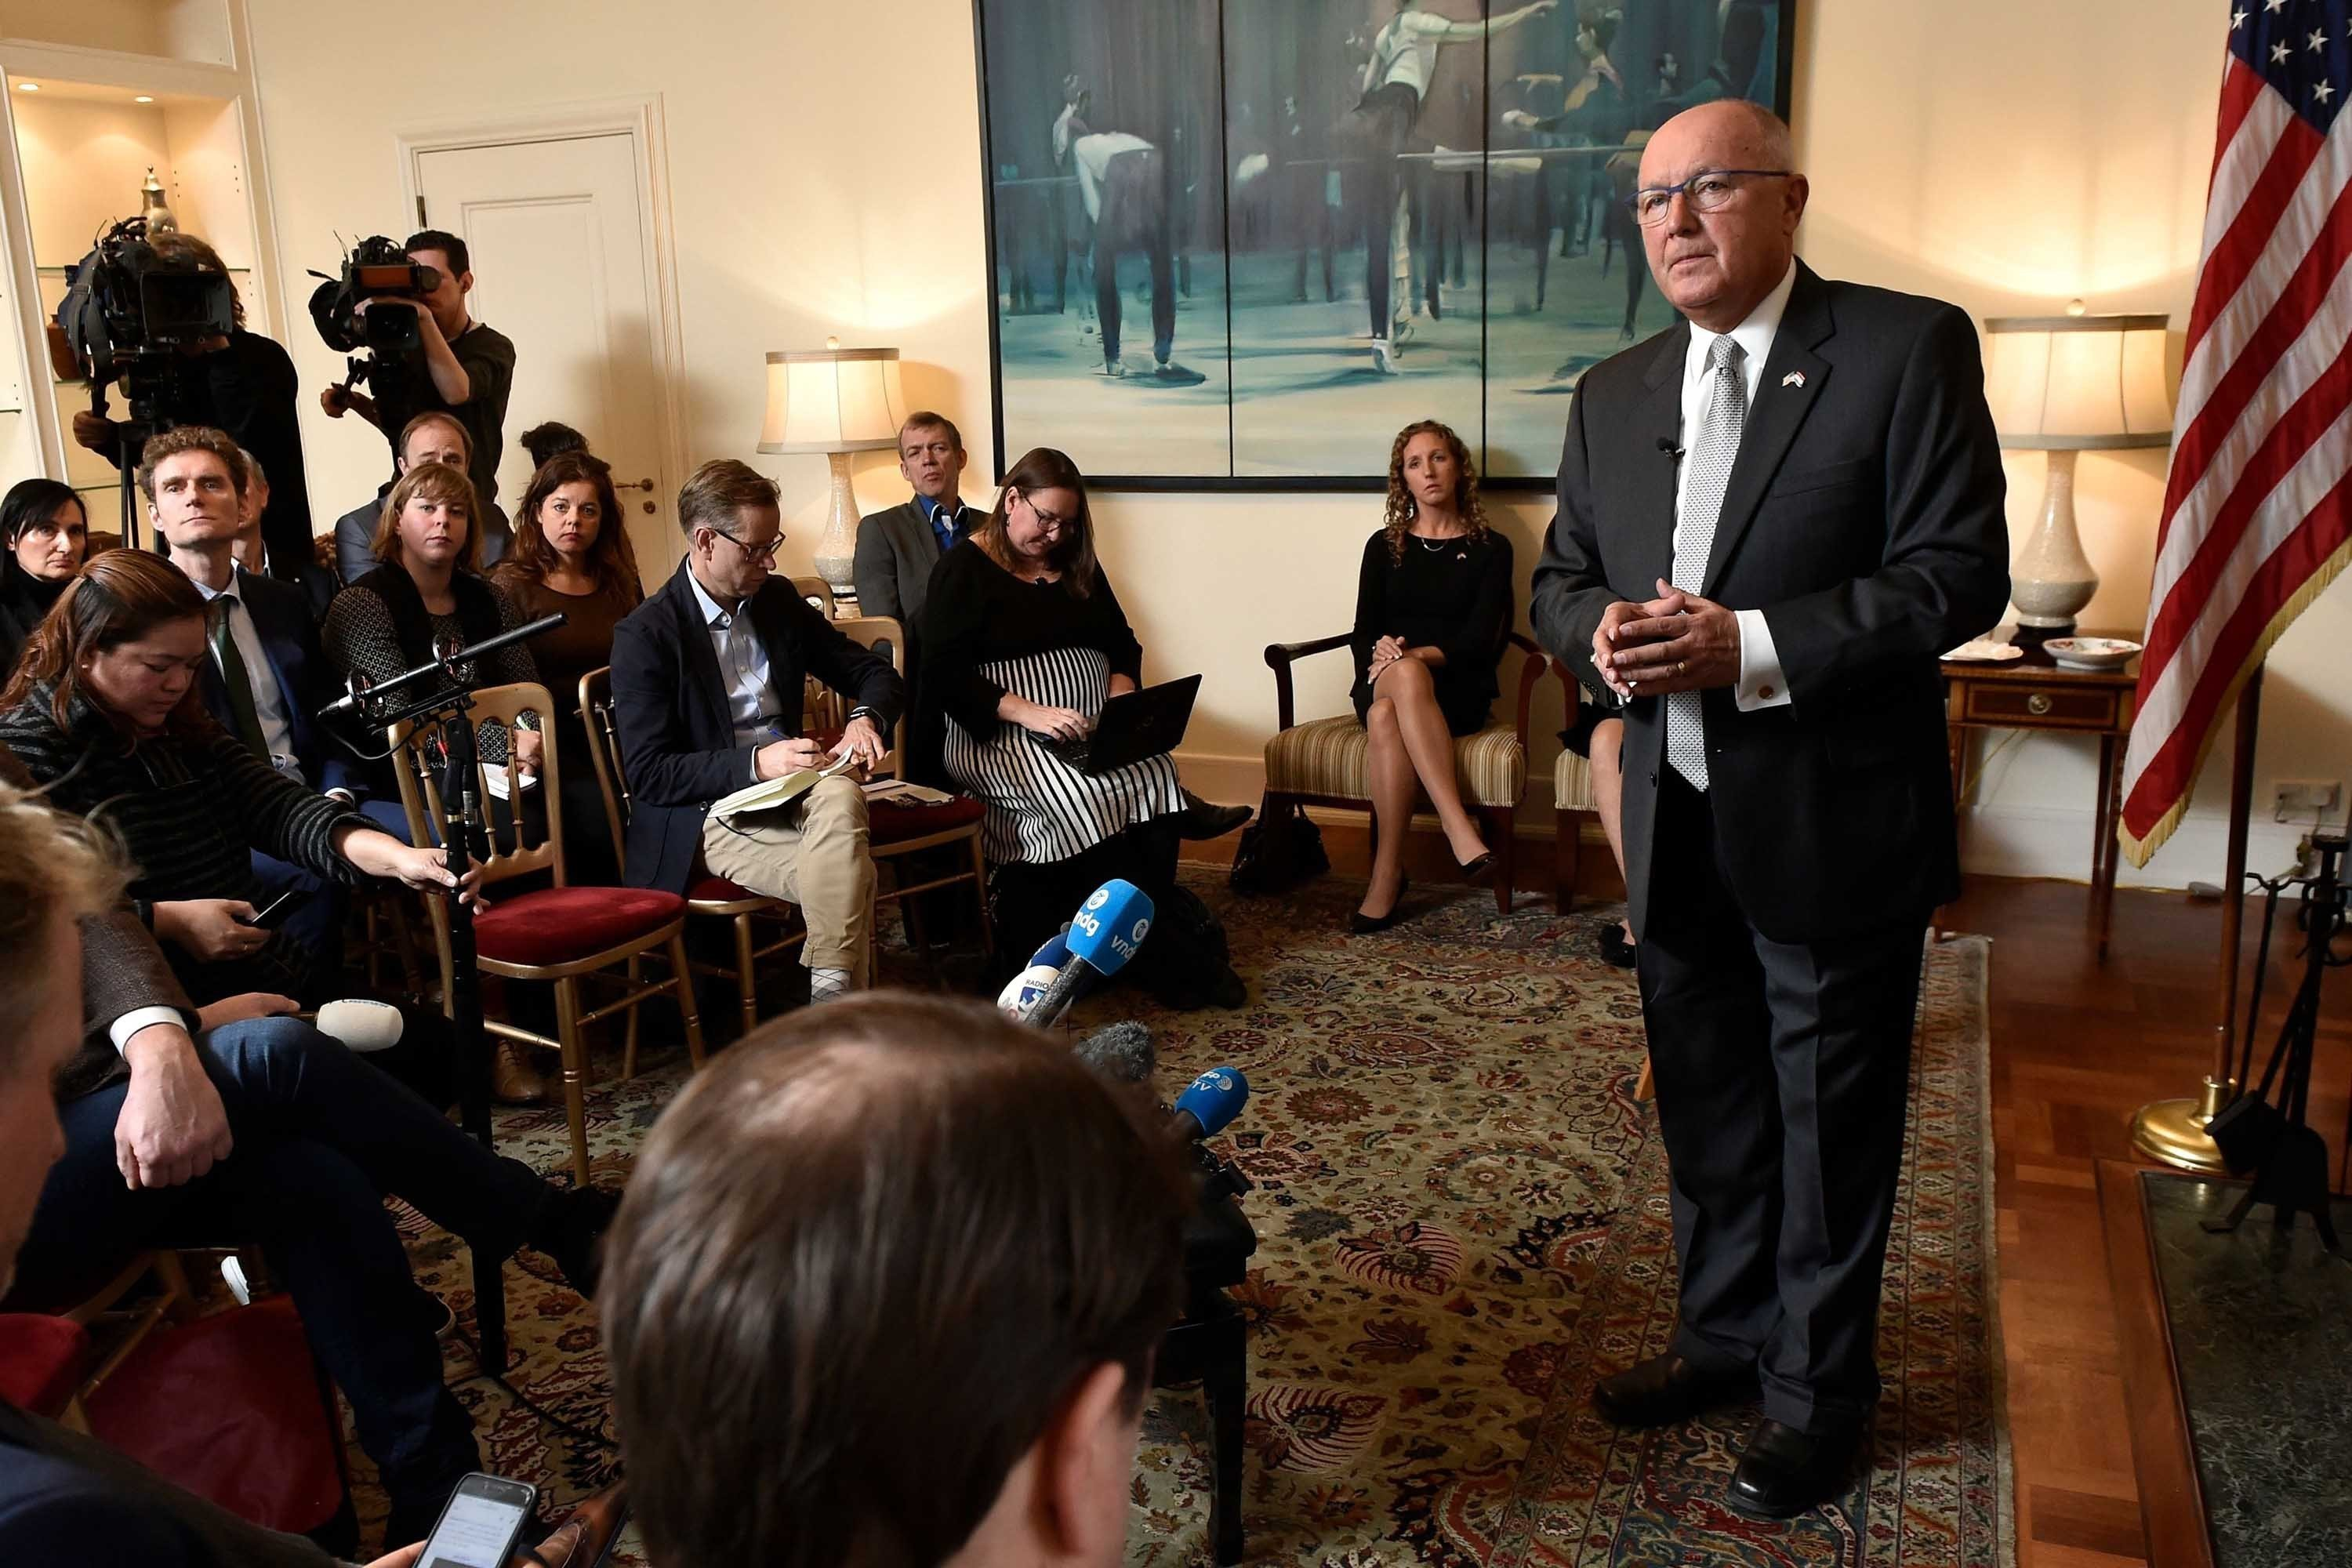 US Ambassador to Netherlands Clashes with Dutch Reporters Over Remarks About Muslims